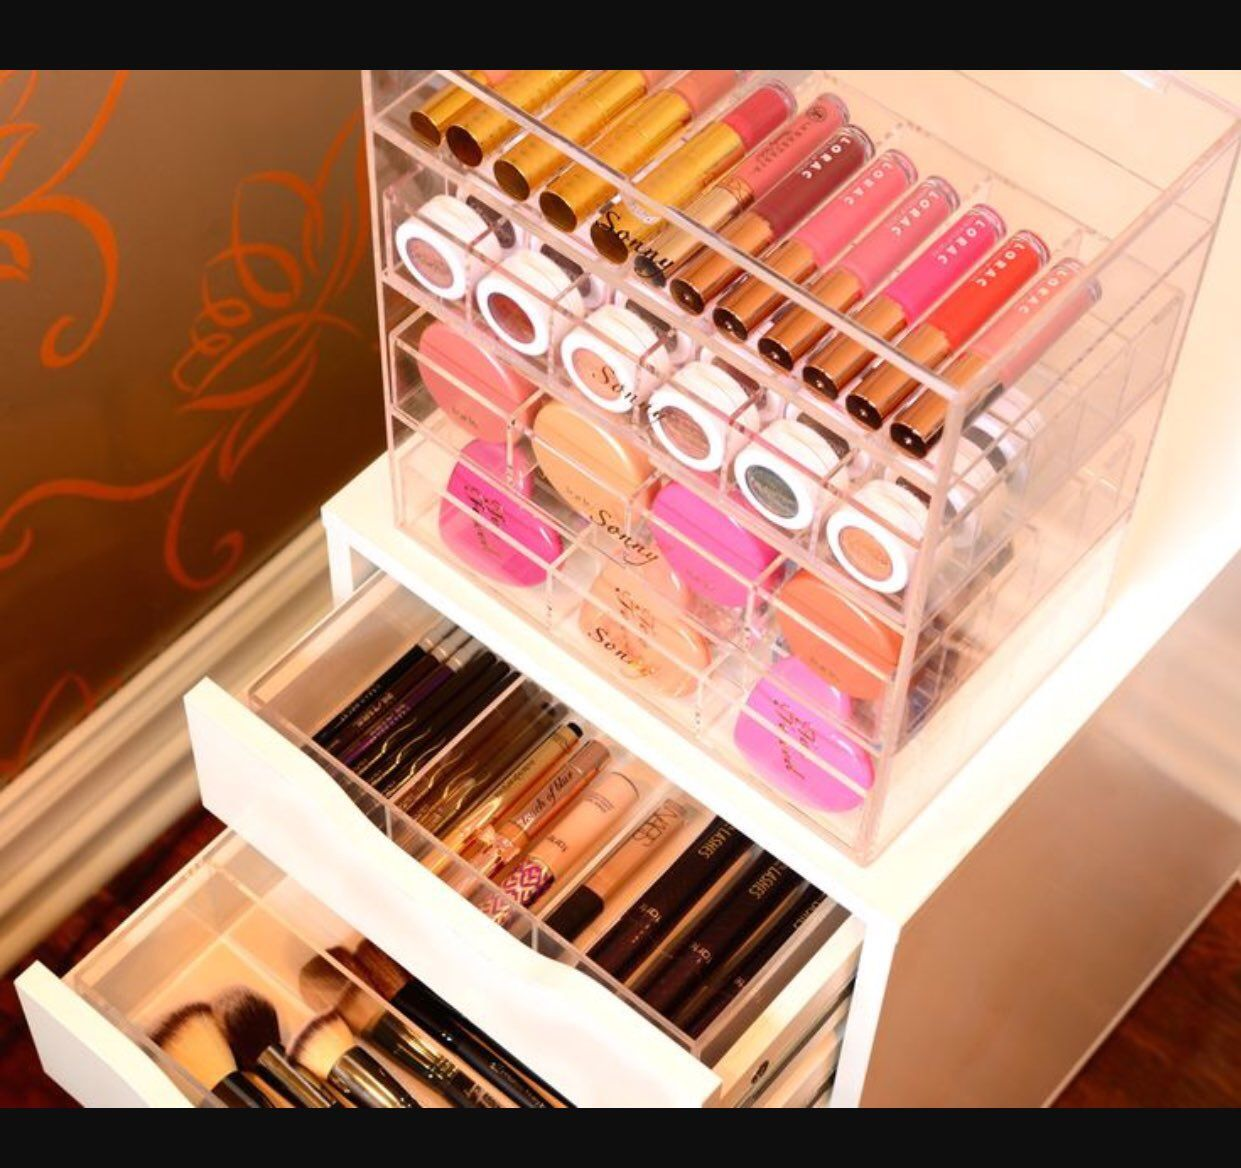 Handmade cosmetic organizers designed to simplify and beautify your makeup collection. Crystal clear acrylic showcases the beauty in beauty products.